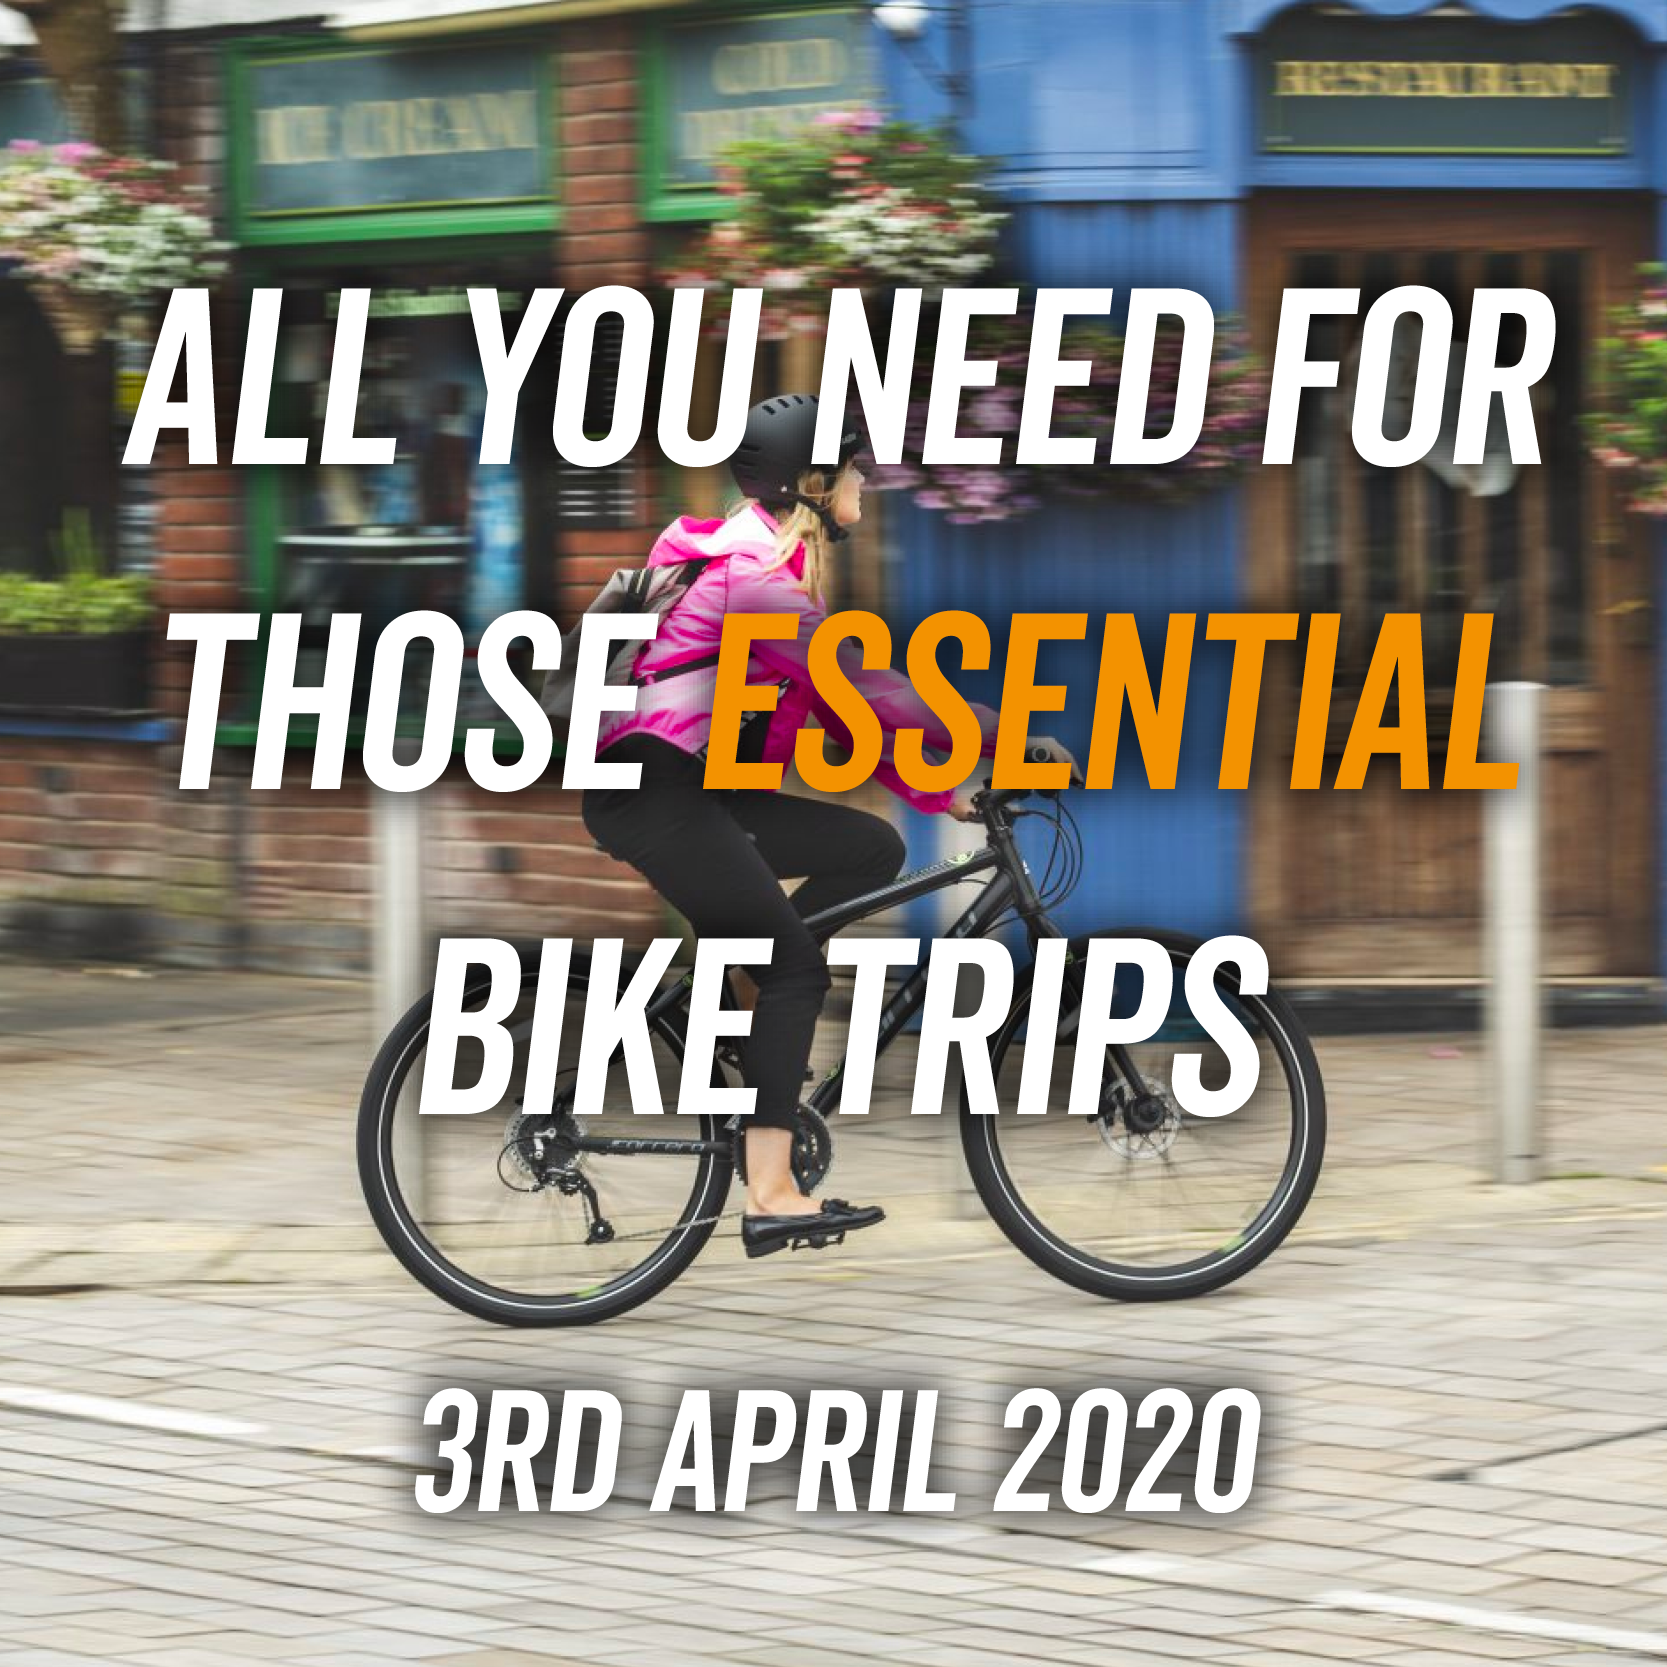 All You Need For Those Essential Bike Trips